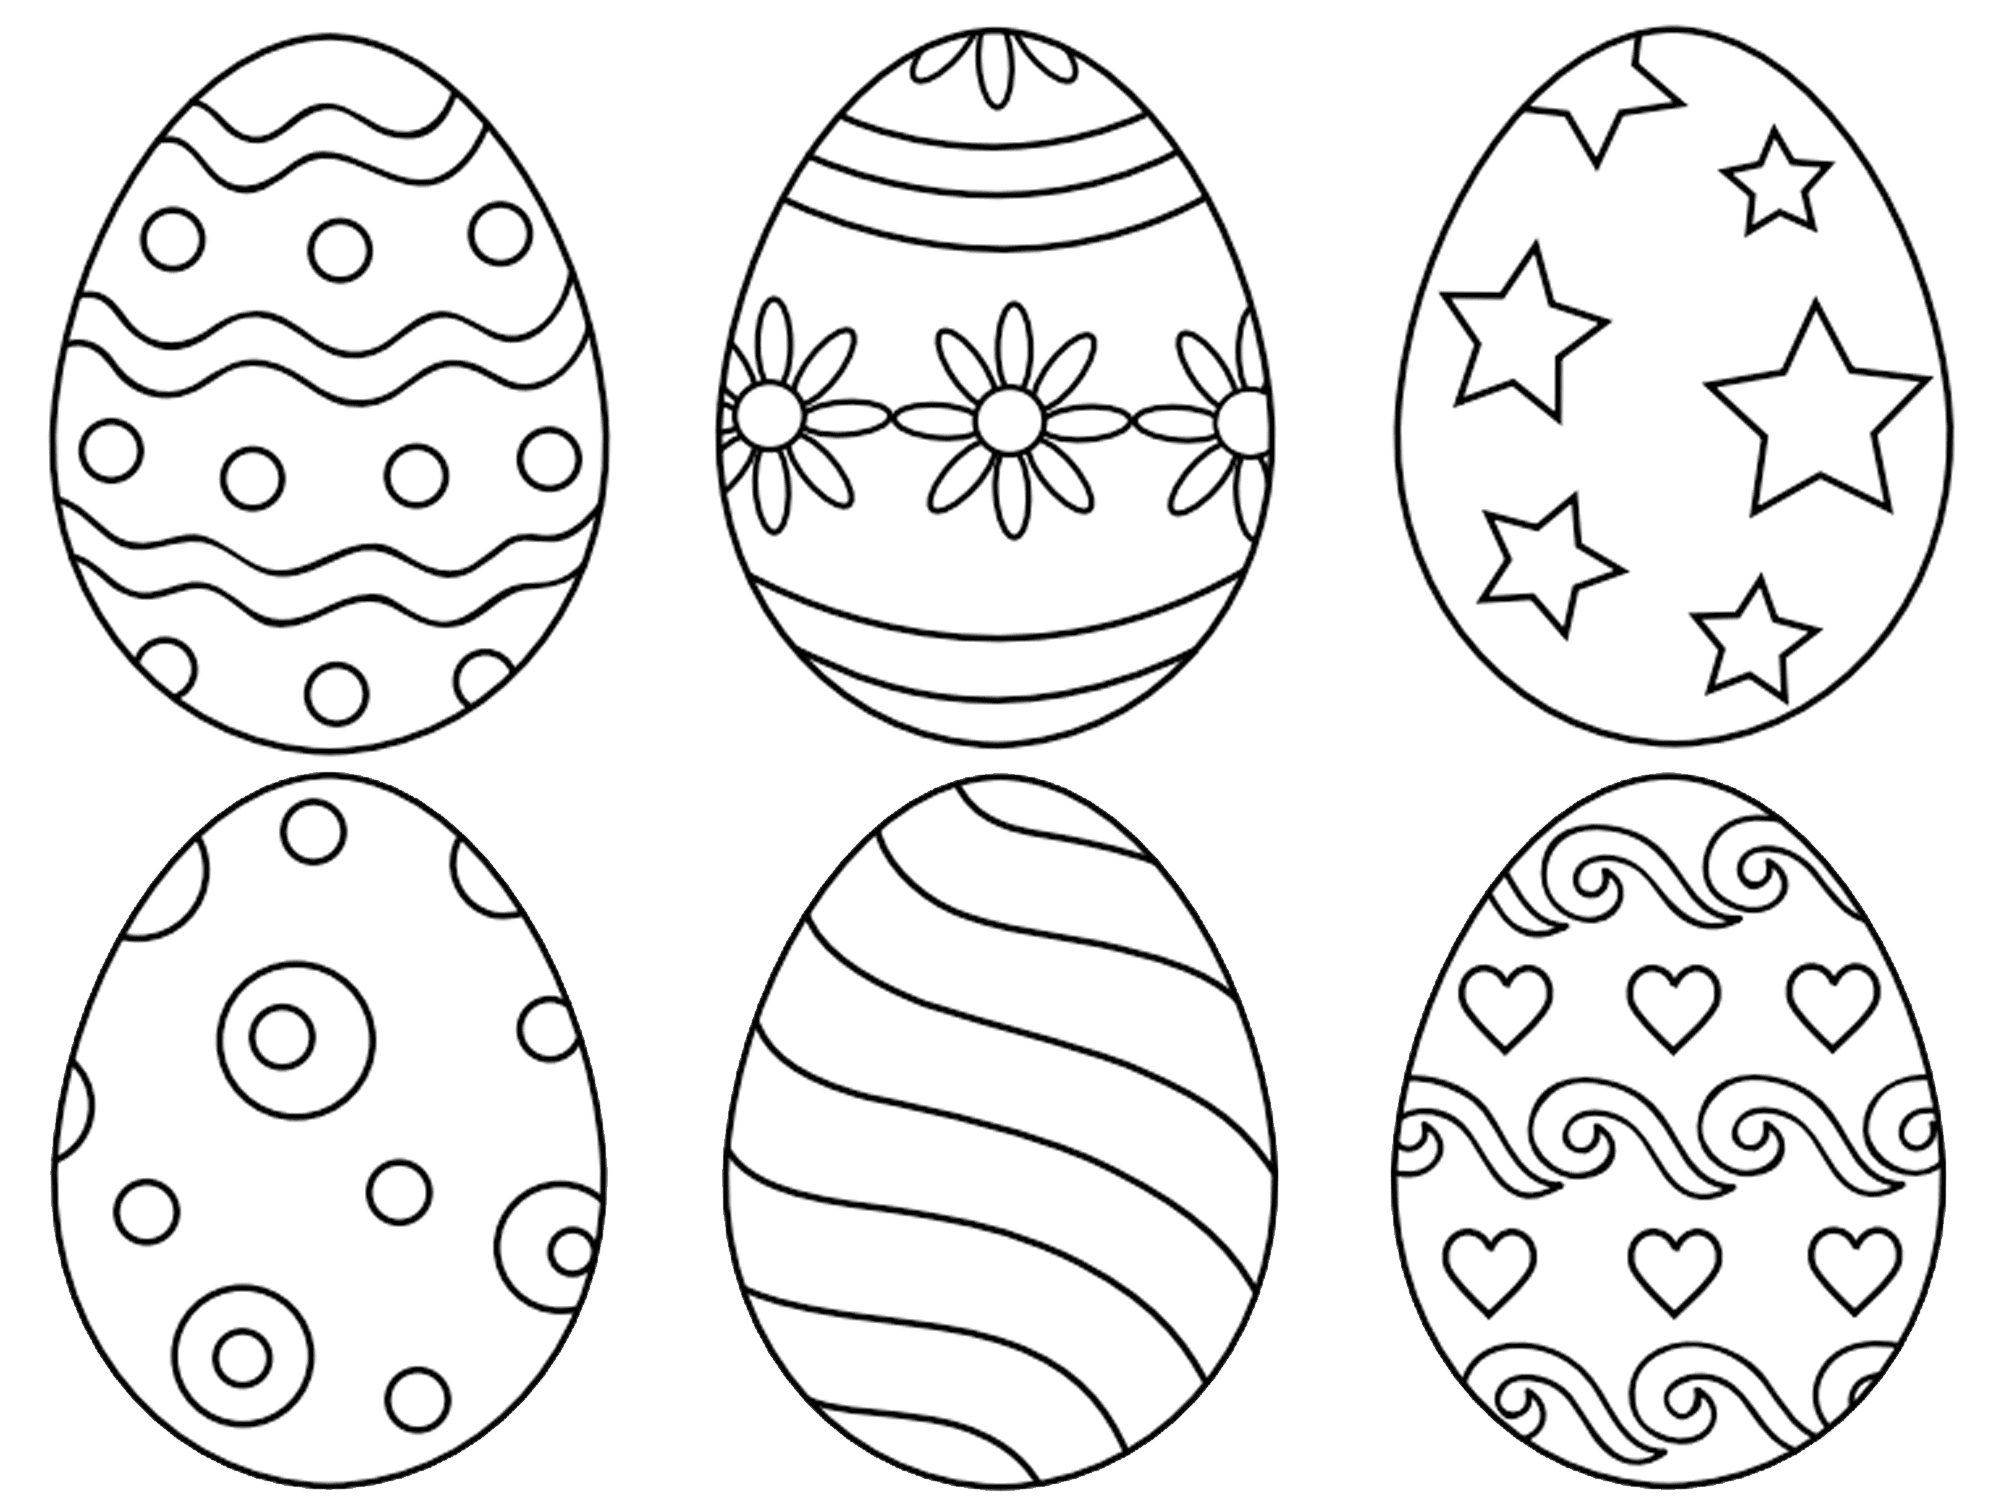 free printable easter egg coloring pages for the kids - Easter Egg Coloring Pages